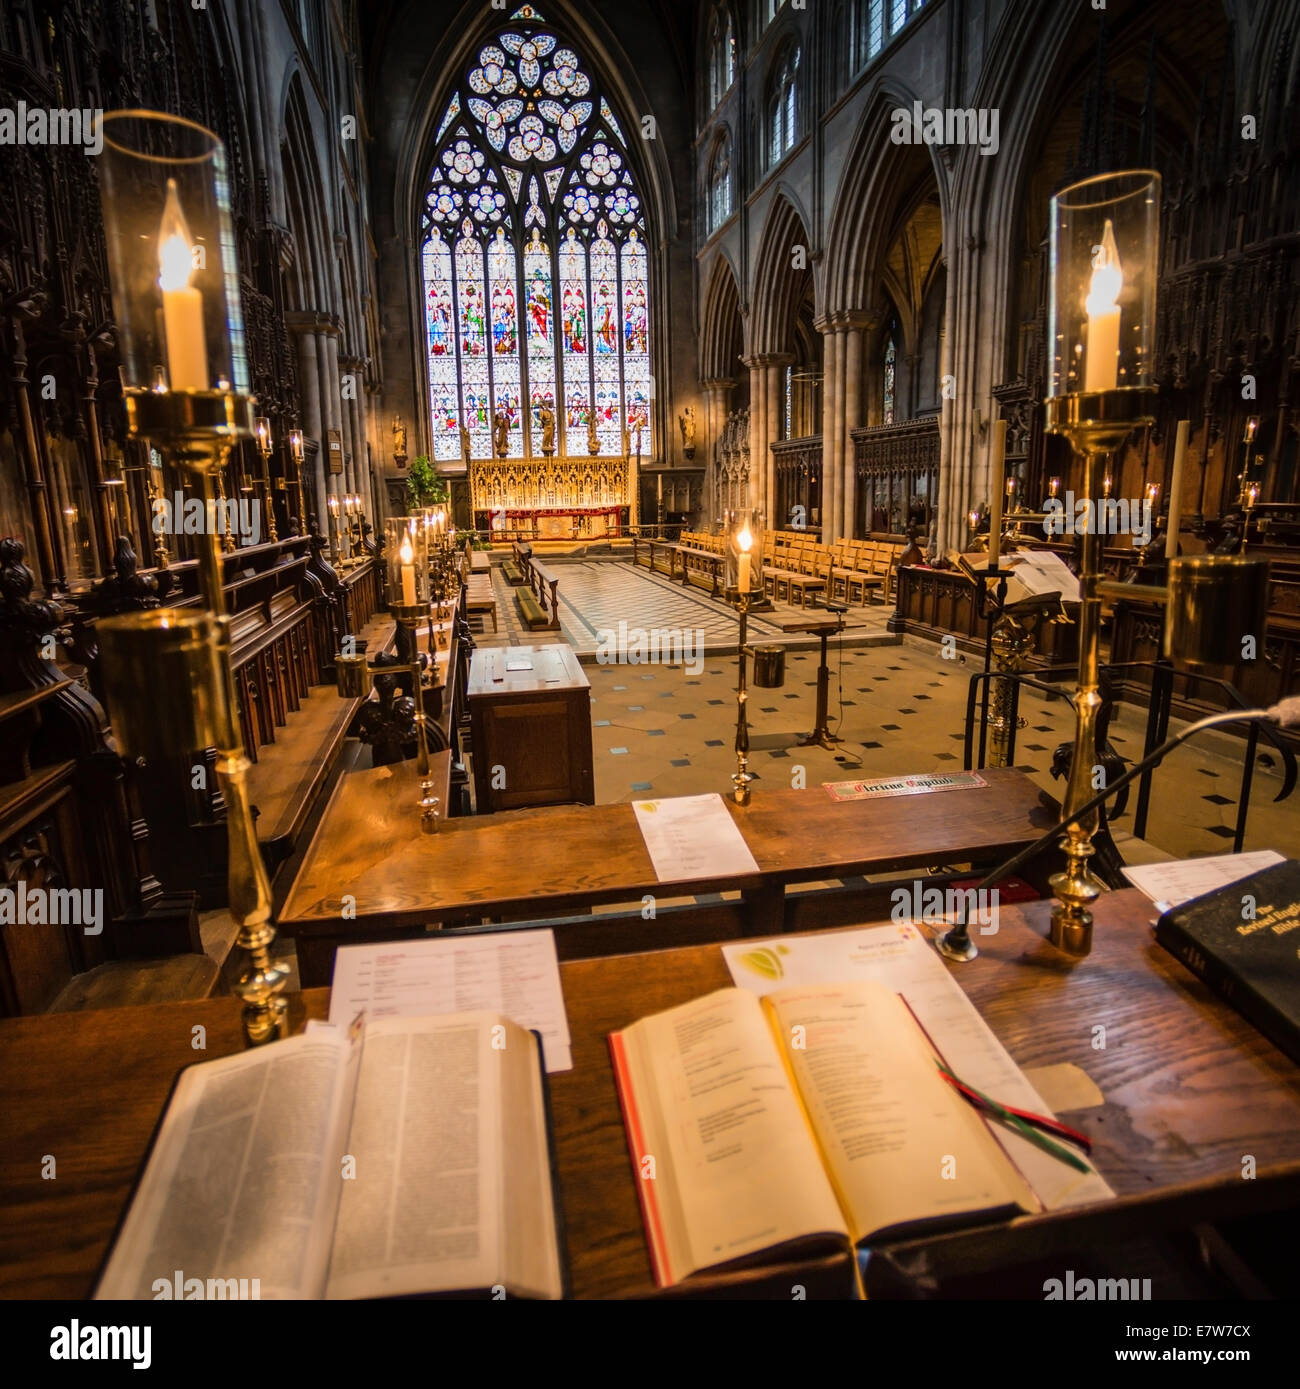 Interior of Ripon Cathedral, Yorkshire. - Stock Image